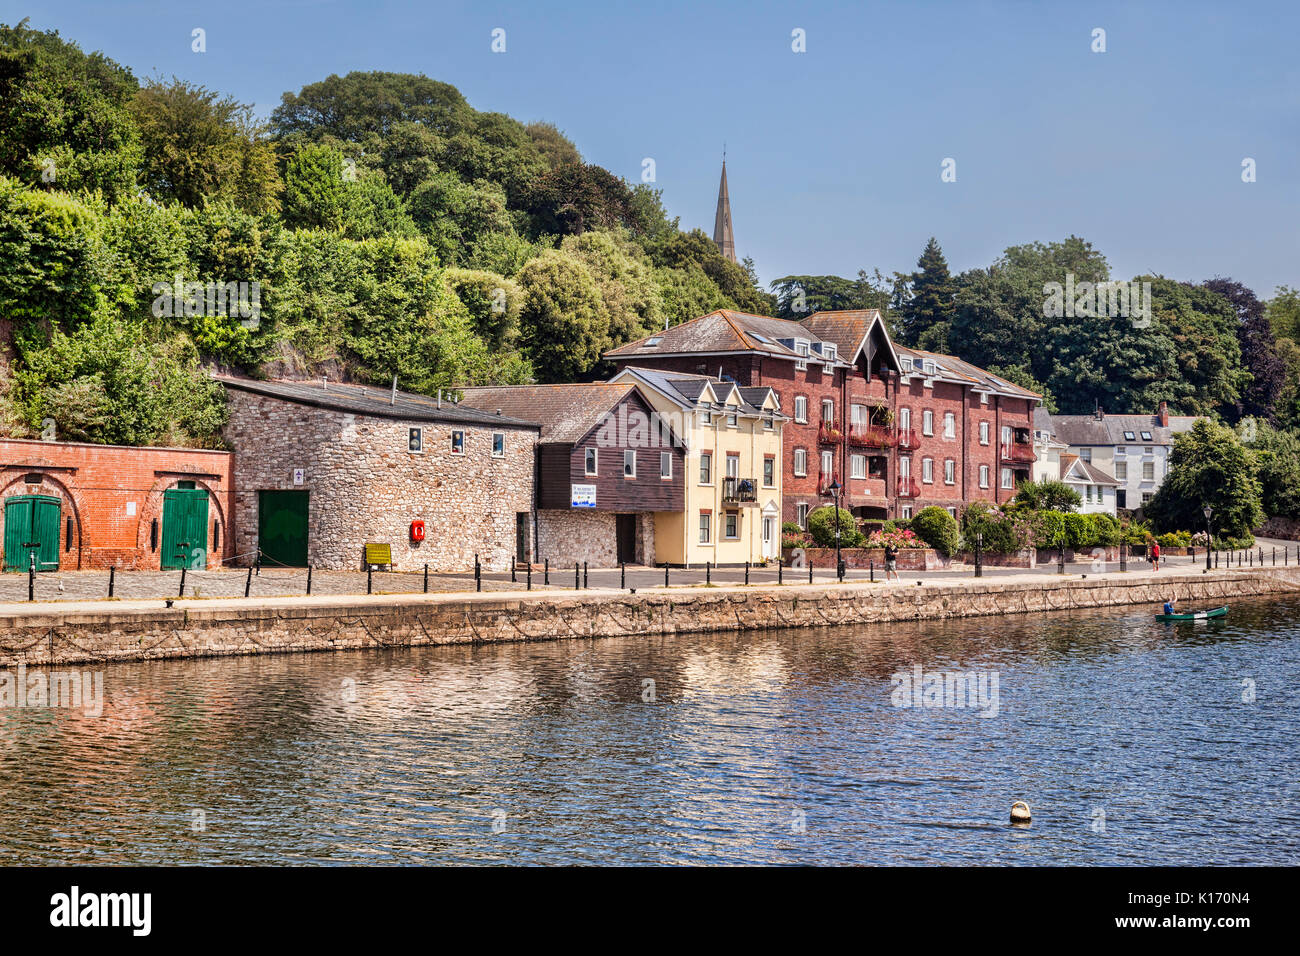 21 June 2017: Exeter, Devon, England, UK - A view along the River Exe to some of the attractions on Exeter Quays. - Stock Image